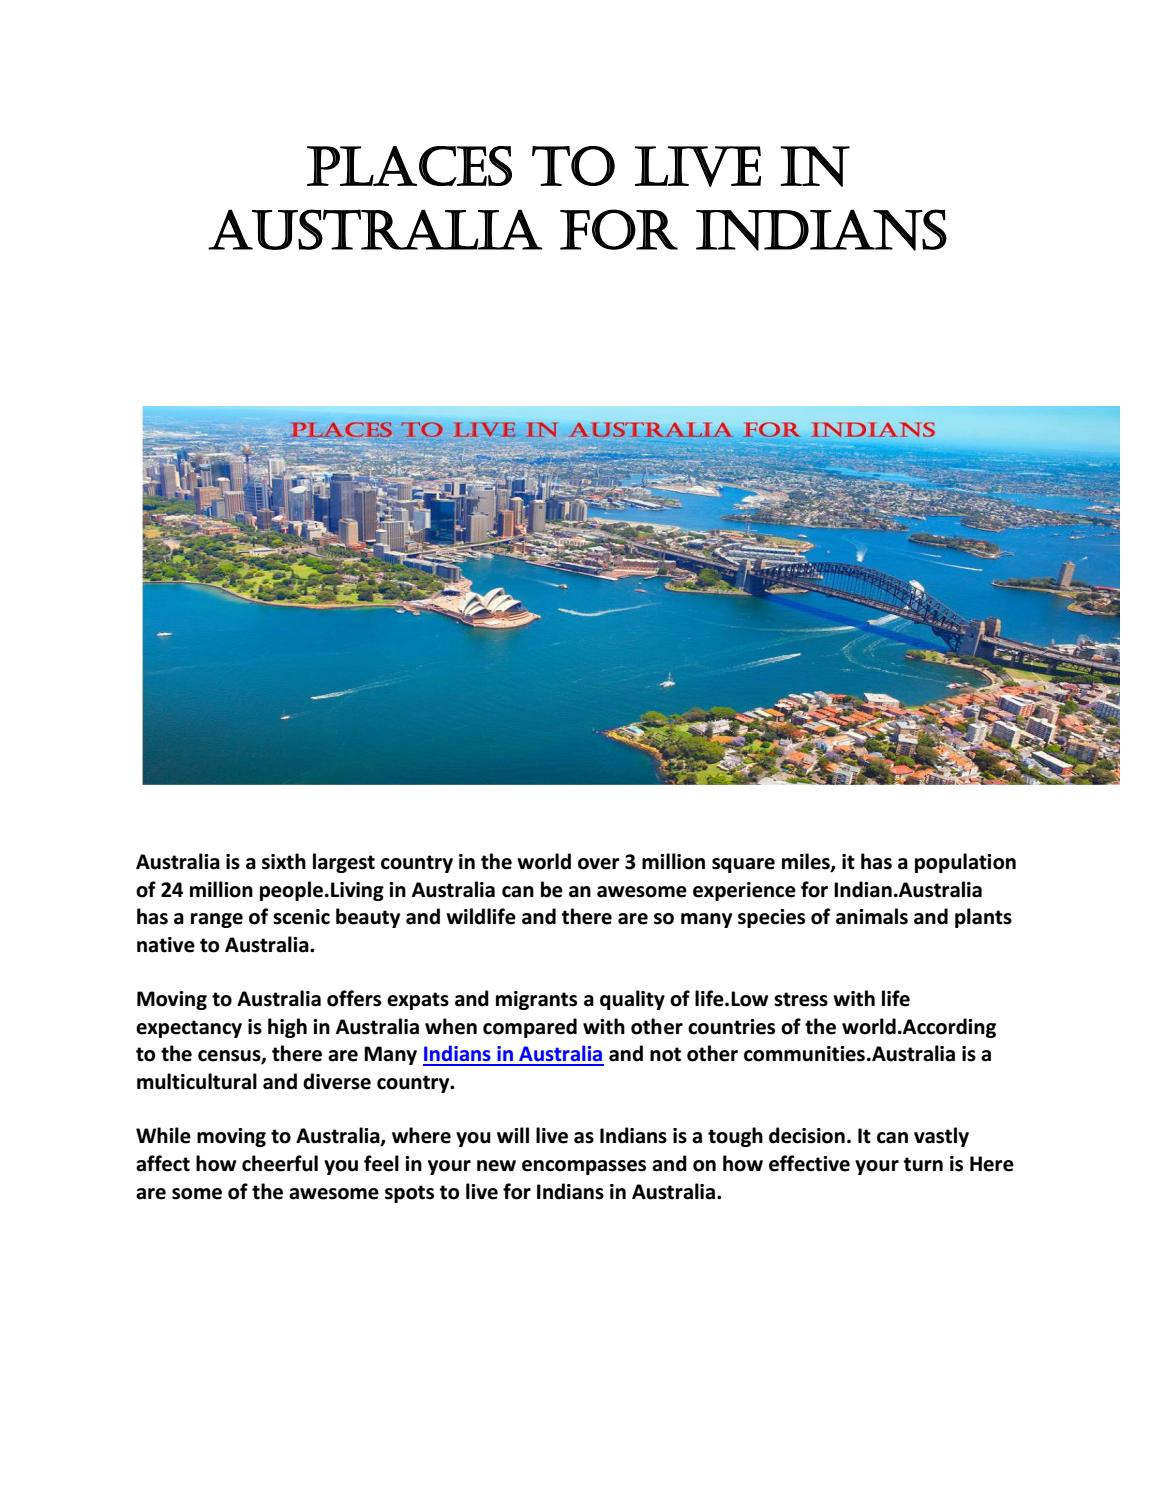 Places to live in australia for indians by theindiansun - issuu